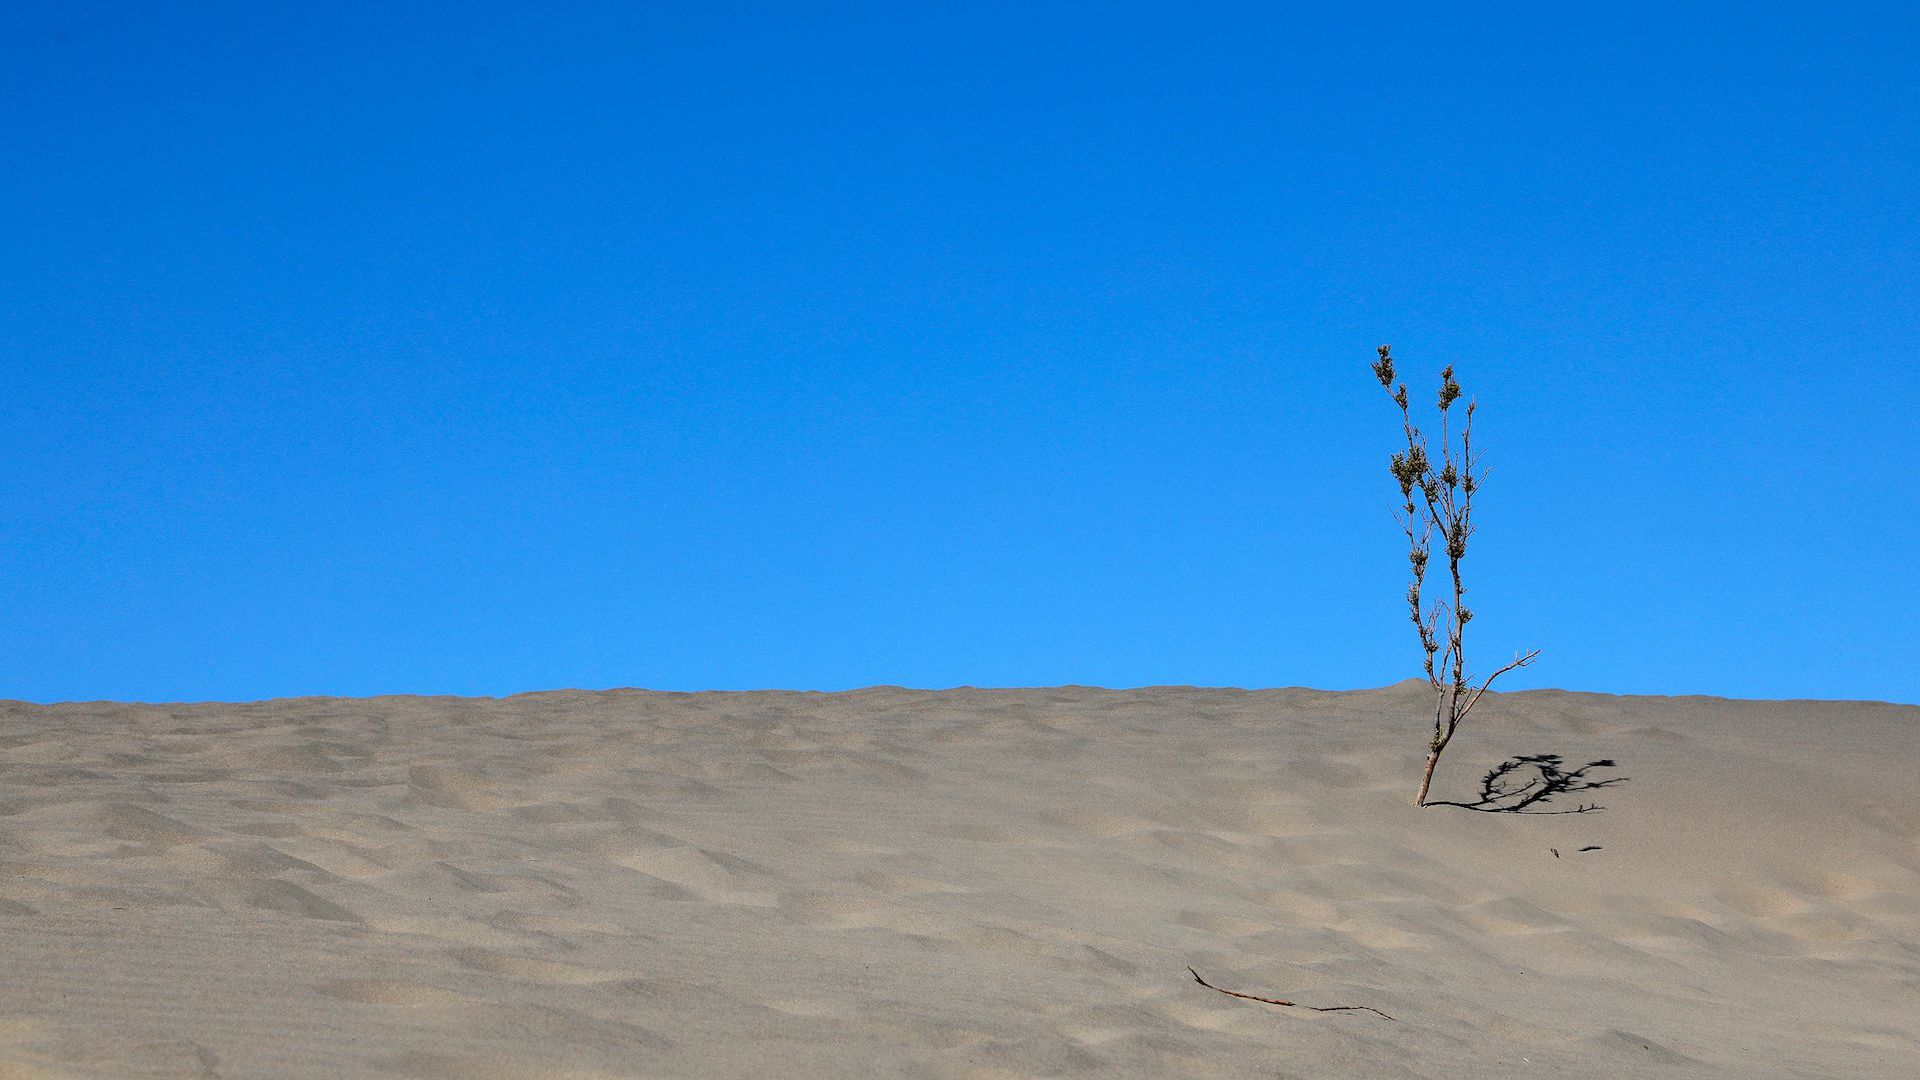 A sand dune and small plant in Death Valley National Park.